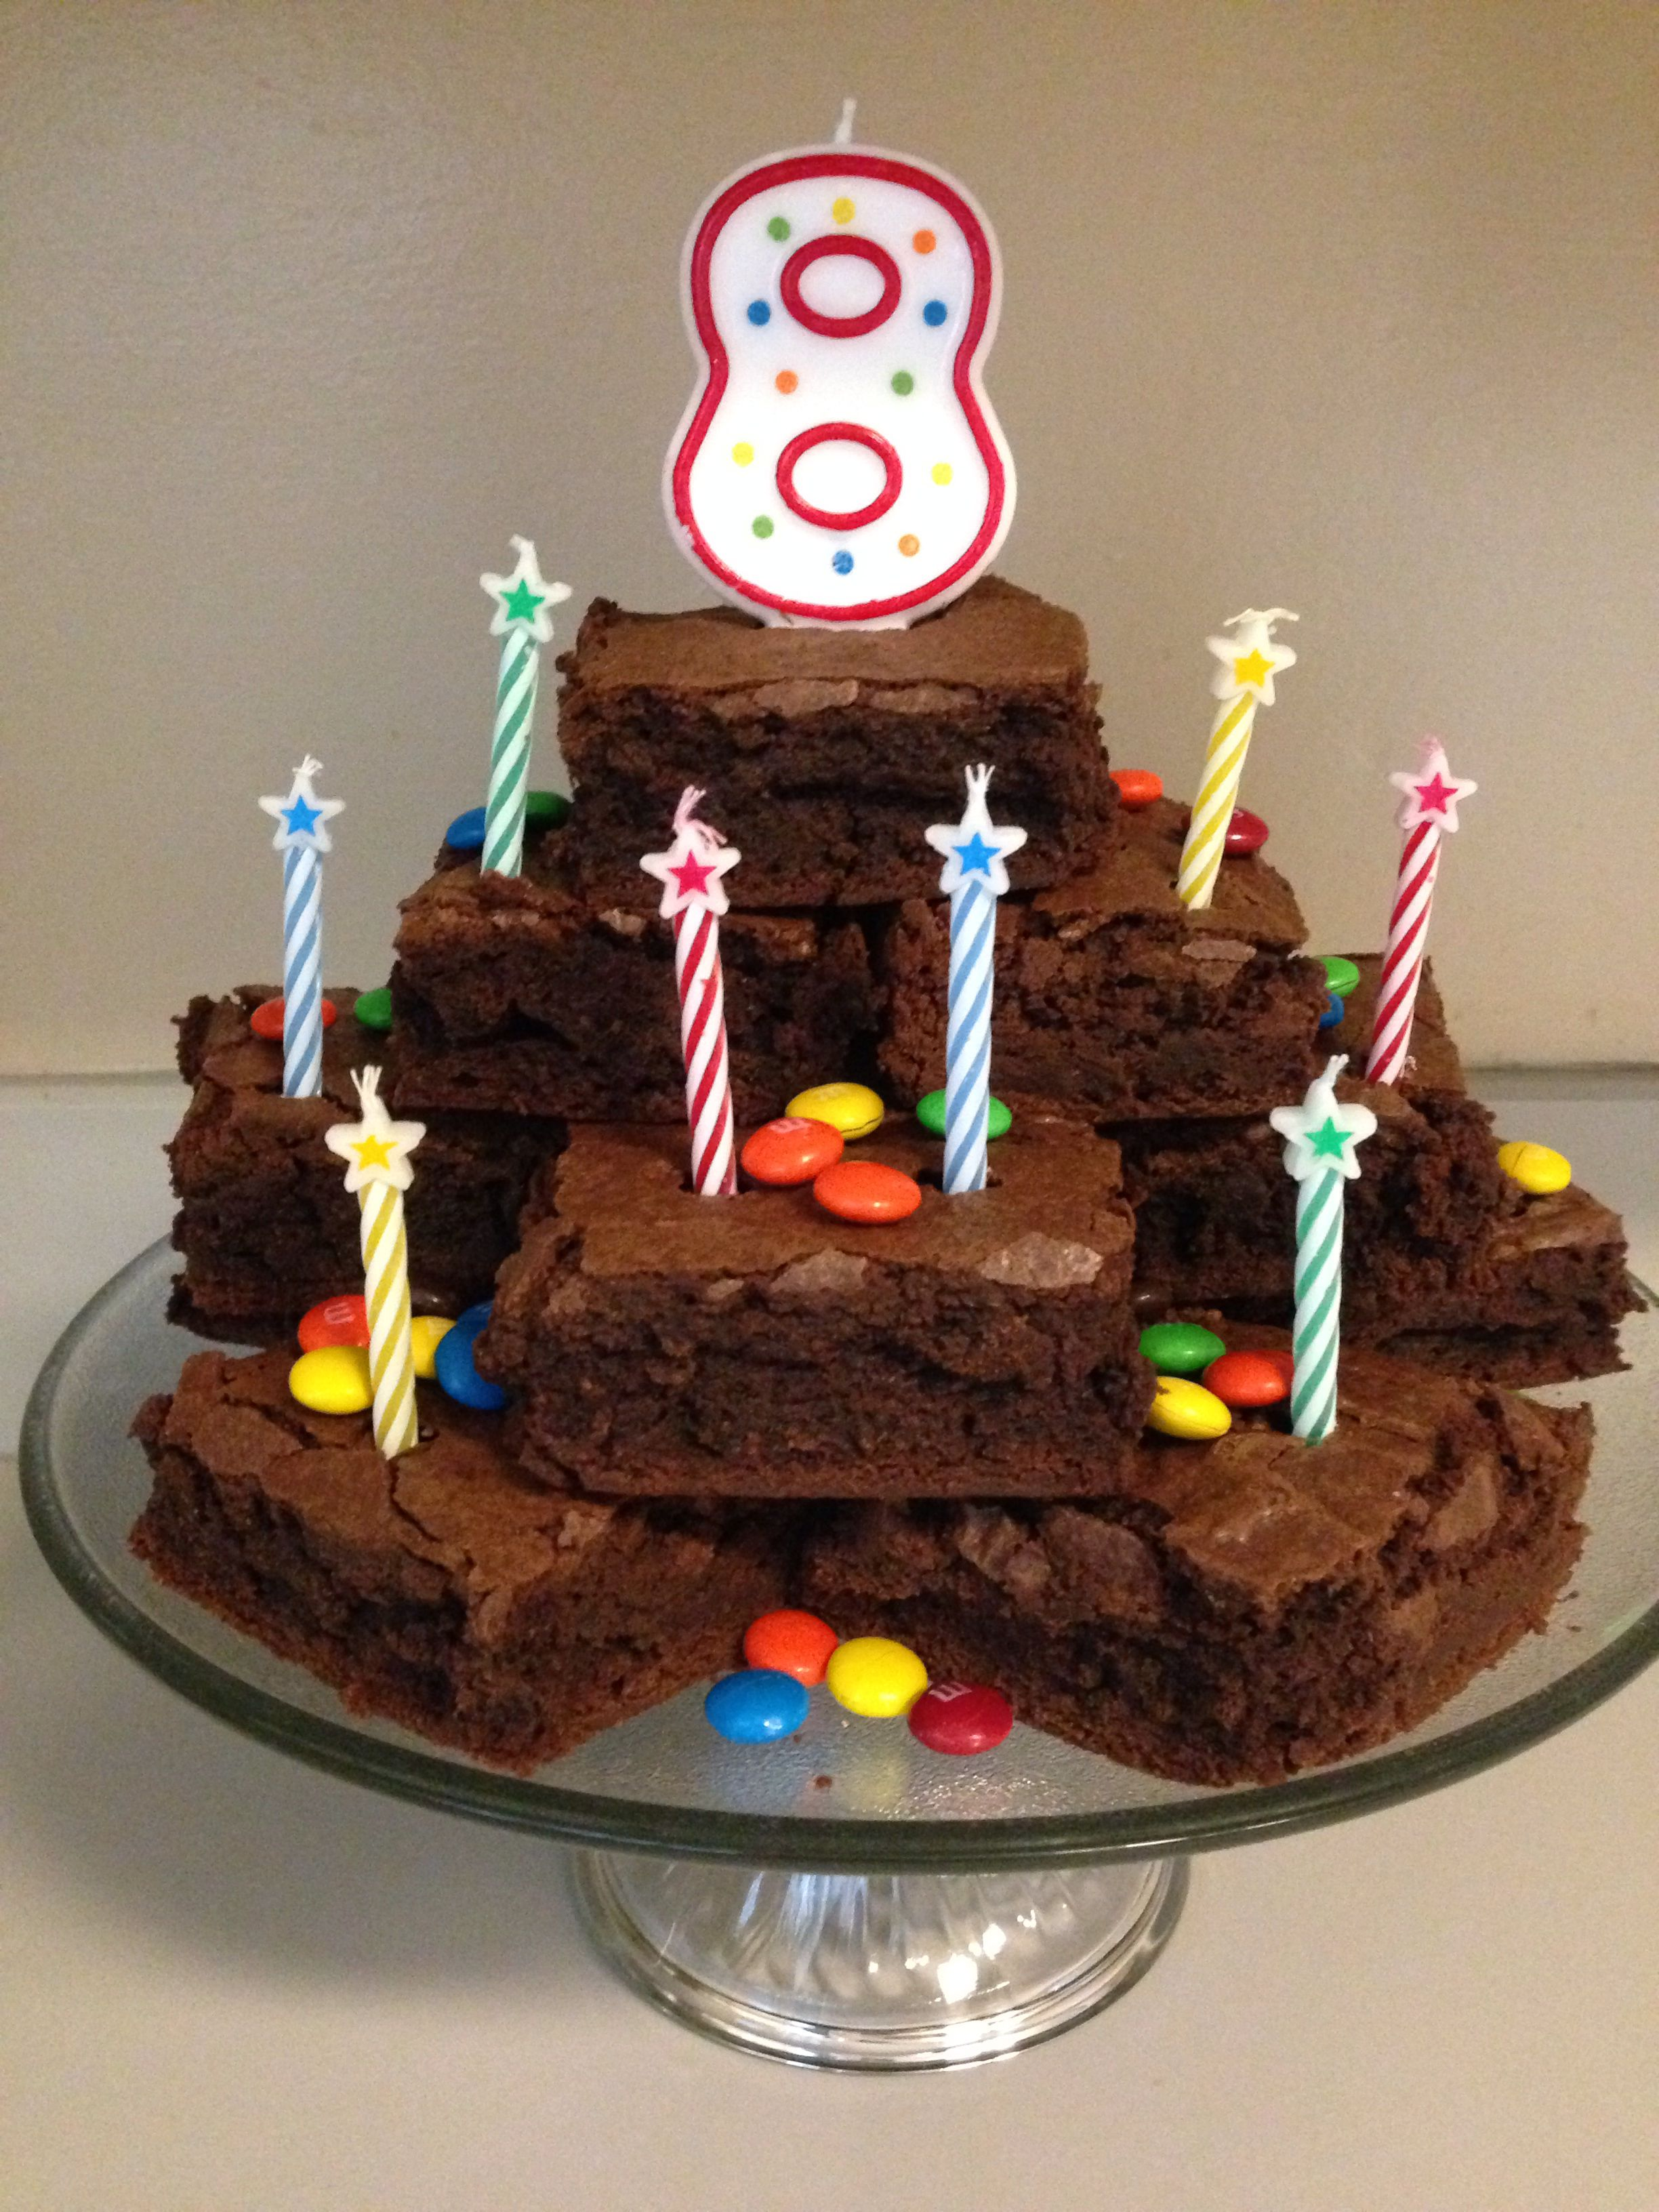 Astounding Brownie Stack Birthday Cake With Images Birthday Cake Brownies Personalised Birthday Cards Paralily Jamesorg